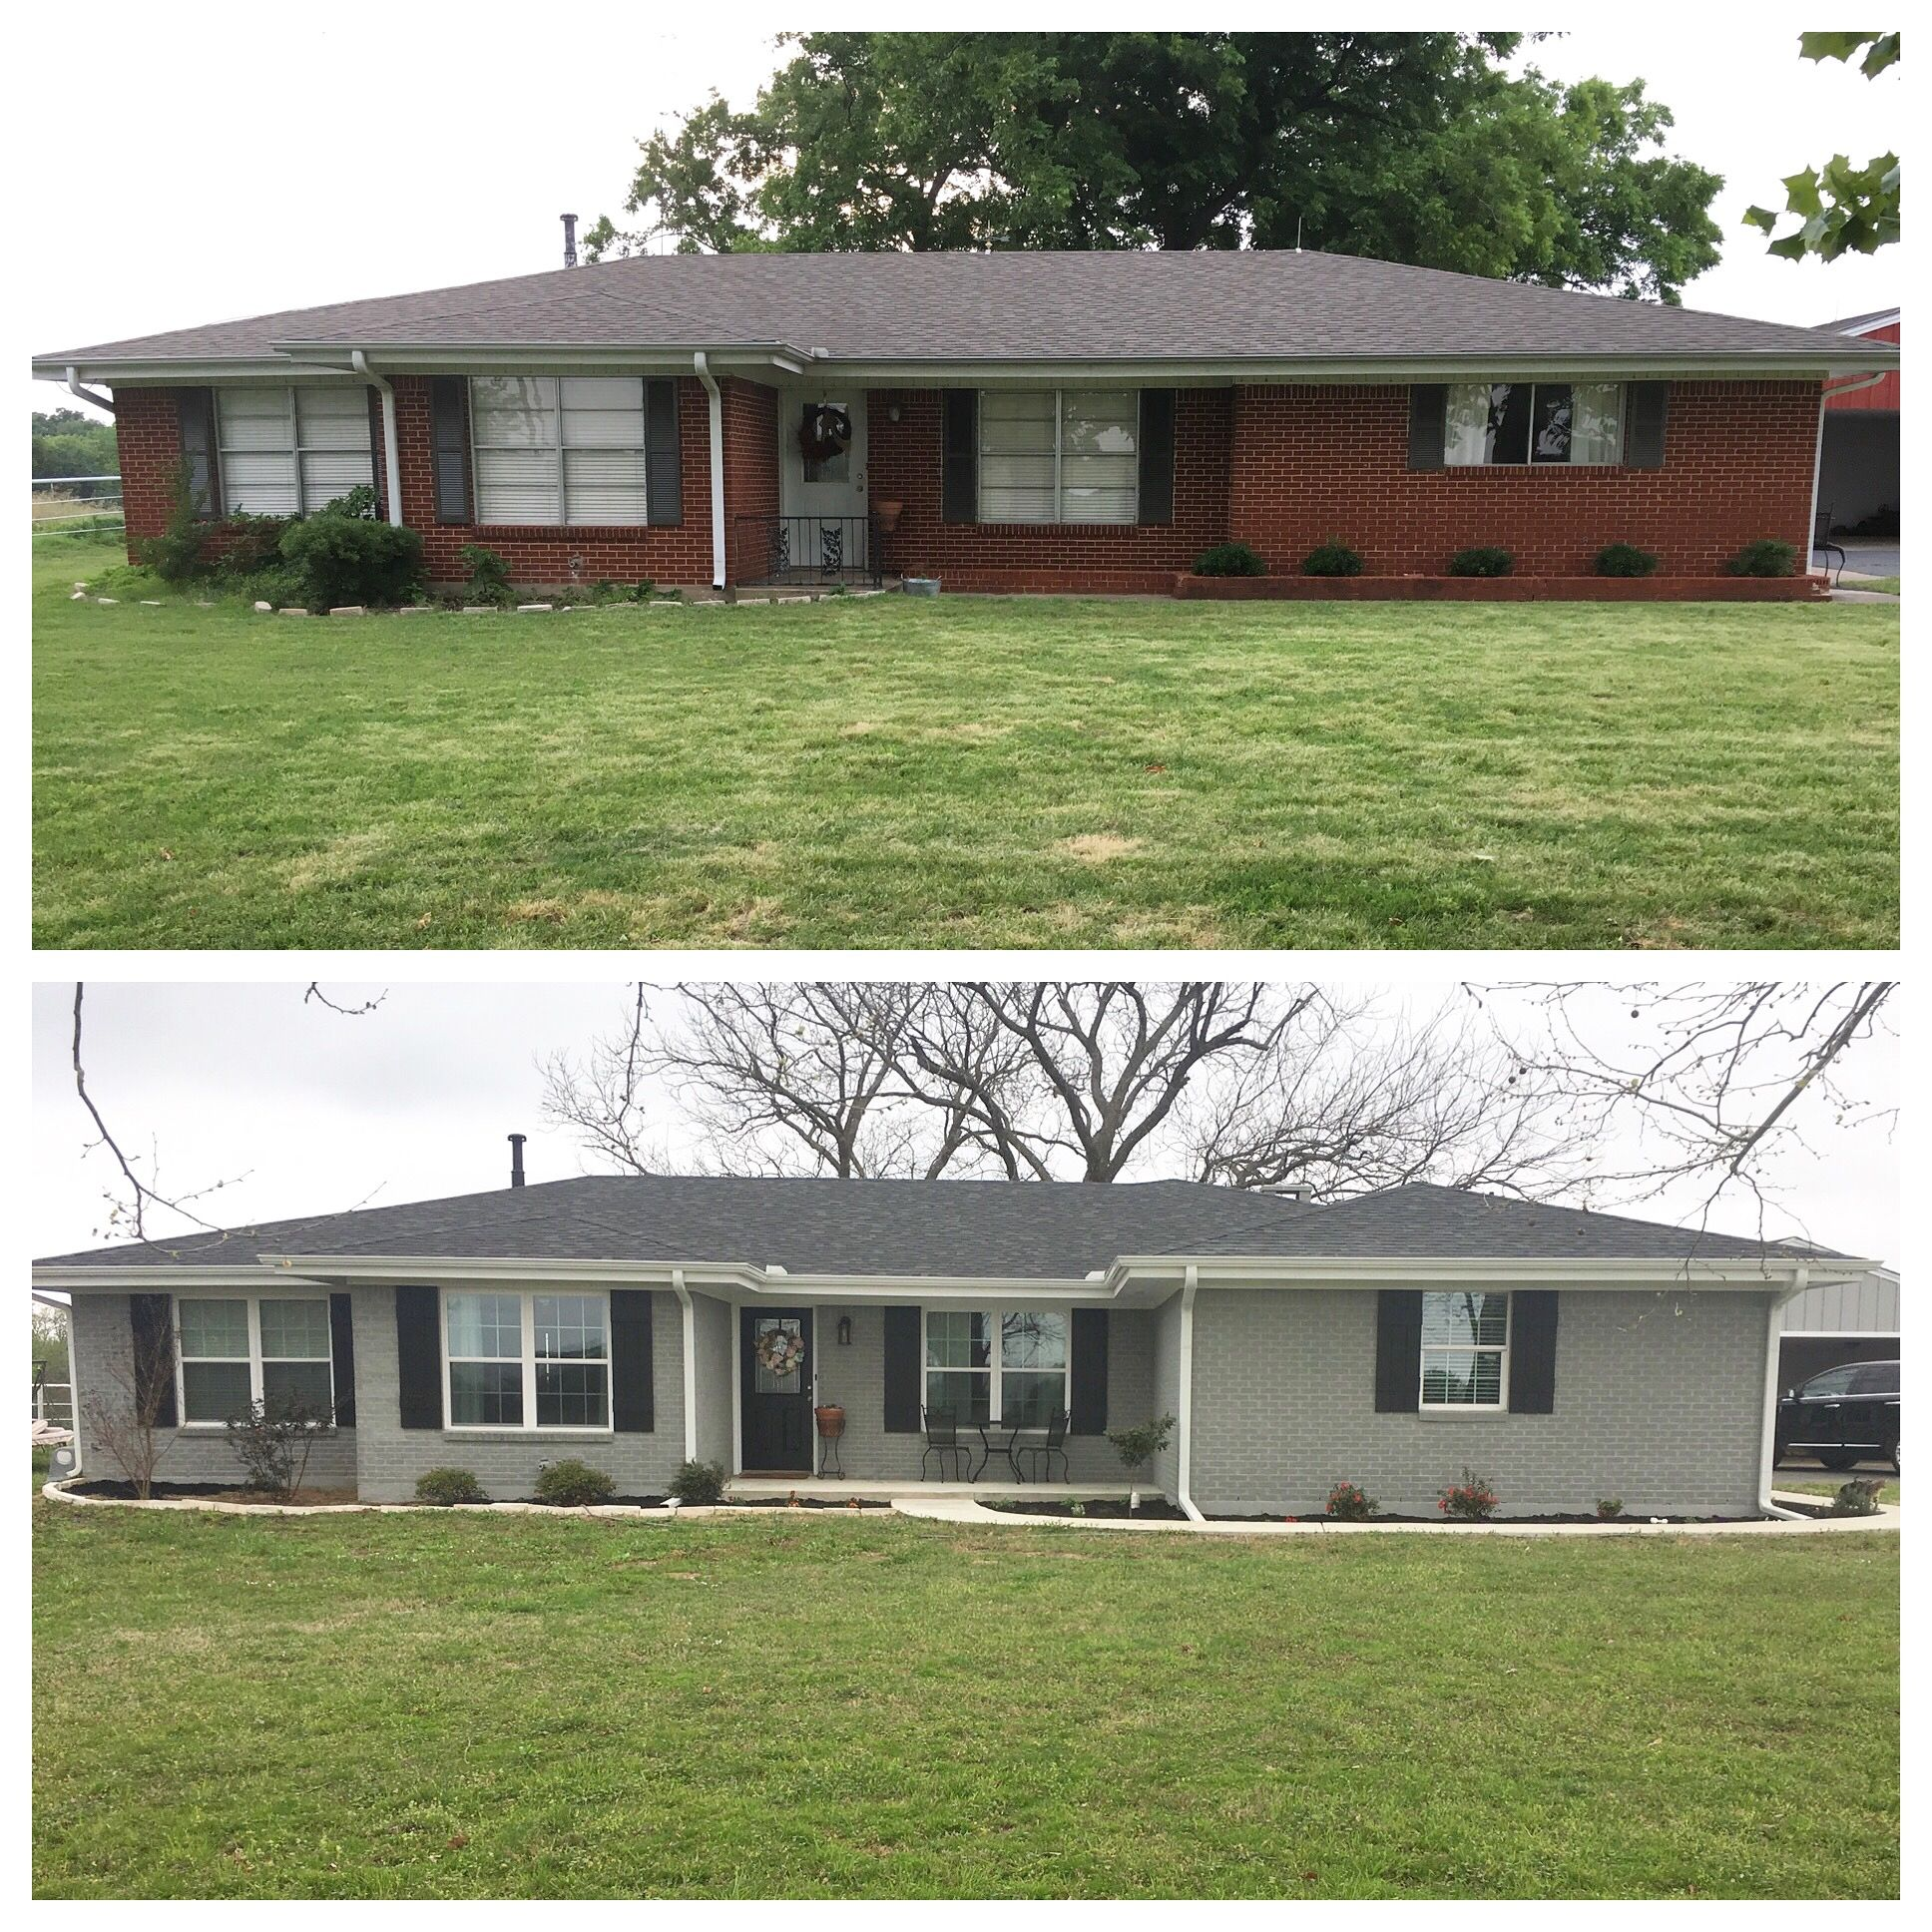 Before And After Ranch Style House Renovation Painted Brick In Sherwin Williams Ellie Gray Farm Shutters Tricorn Black